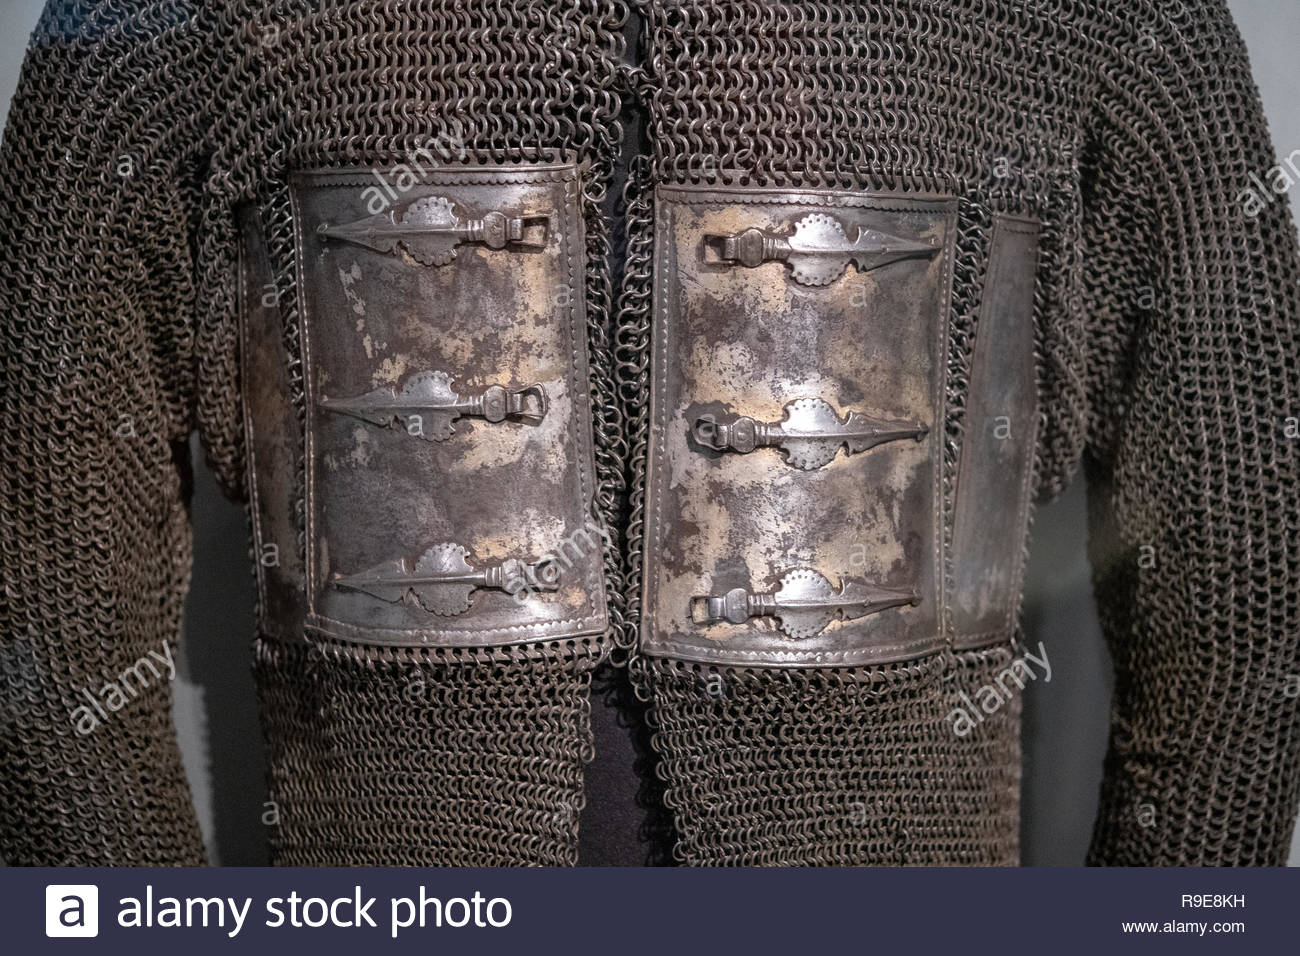 An antique  hybrid armour. Made of metallic plates and mail, the military object offered protection and flexibility to soldiers and warriors of the pa - Stock Image